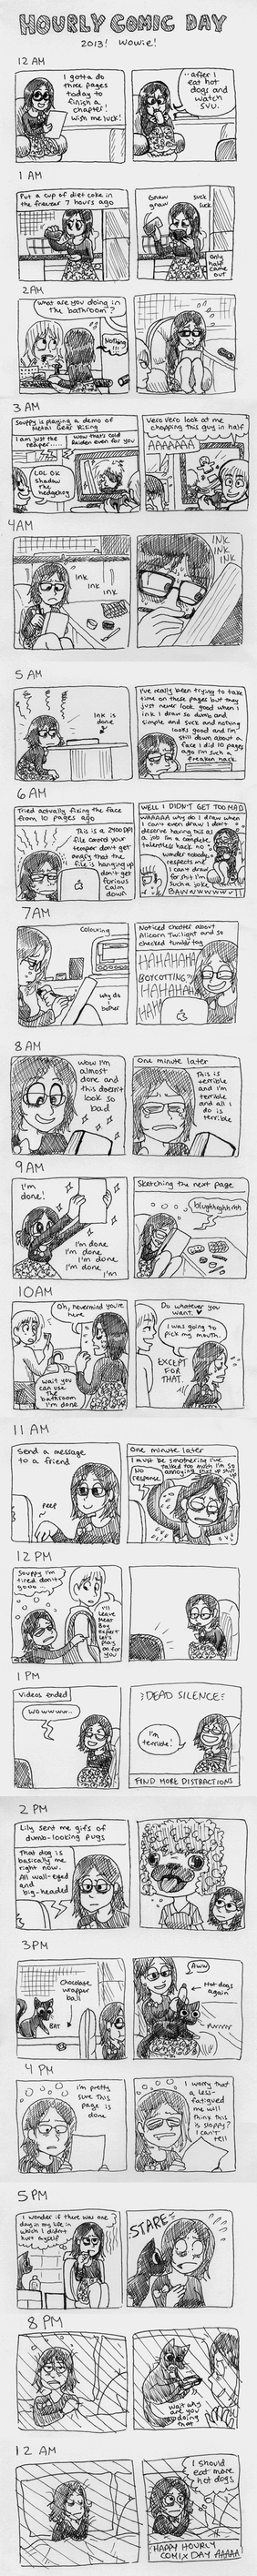 Hourly Comic Day 2013 by taeshilh